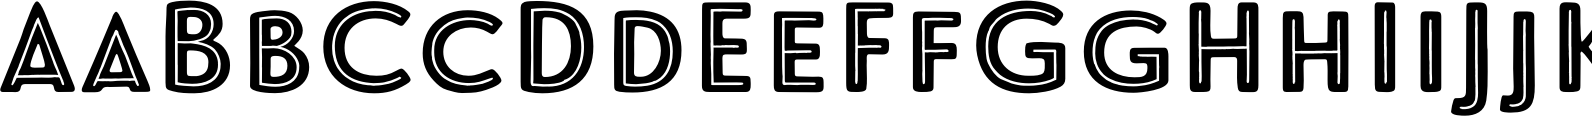 Le Havre Rough Centerline Reversed Font